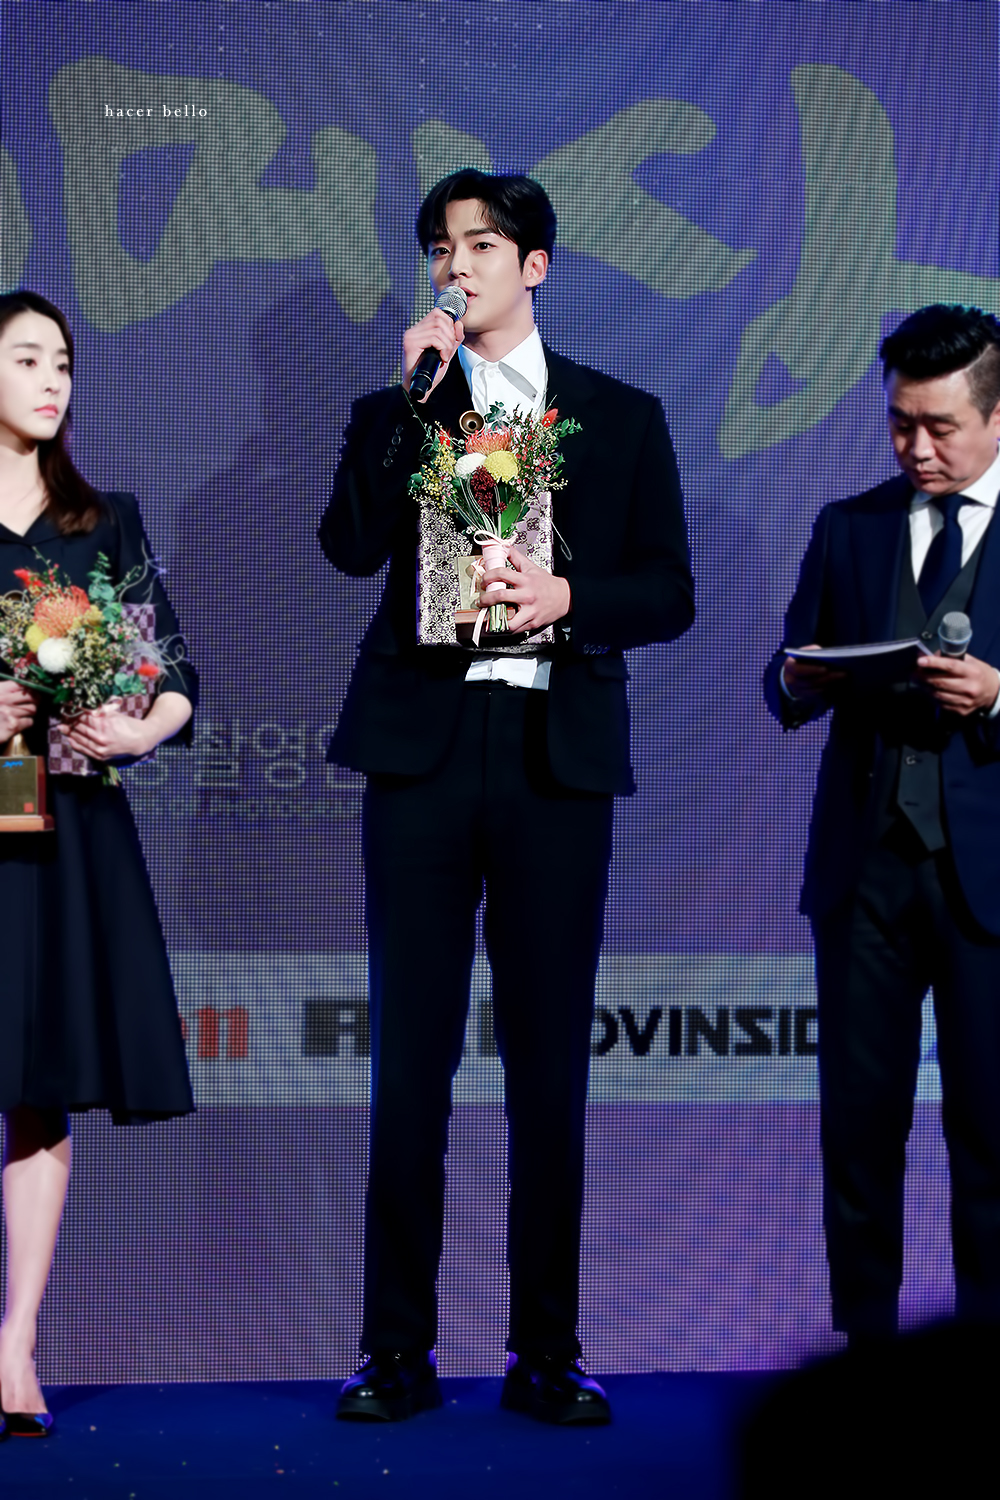 Rowoon, Rowoon sf9, Rowoon award, Rowoon grimae, Rowoon best new actor, Rowoon ceremony, Rowoon haru. Rowoon first, Rowoon extraordinary you